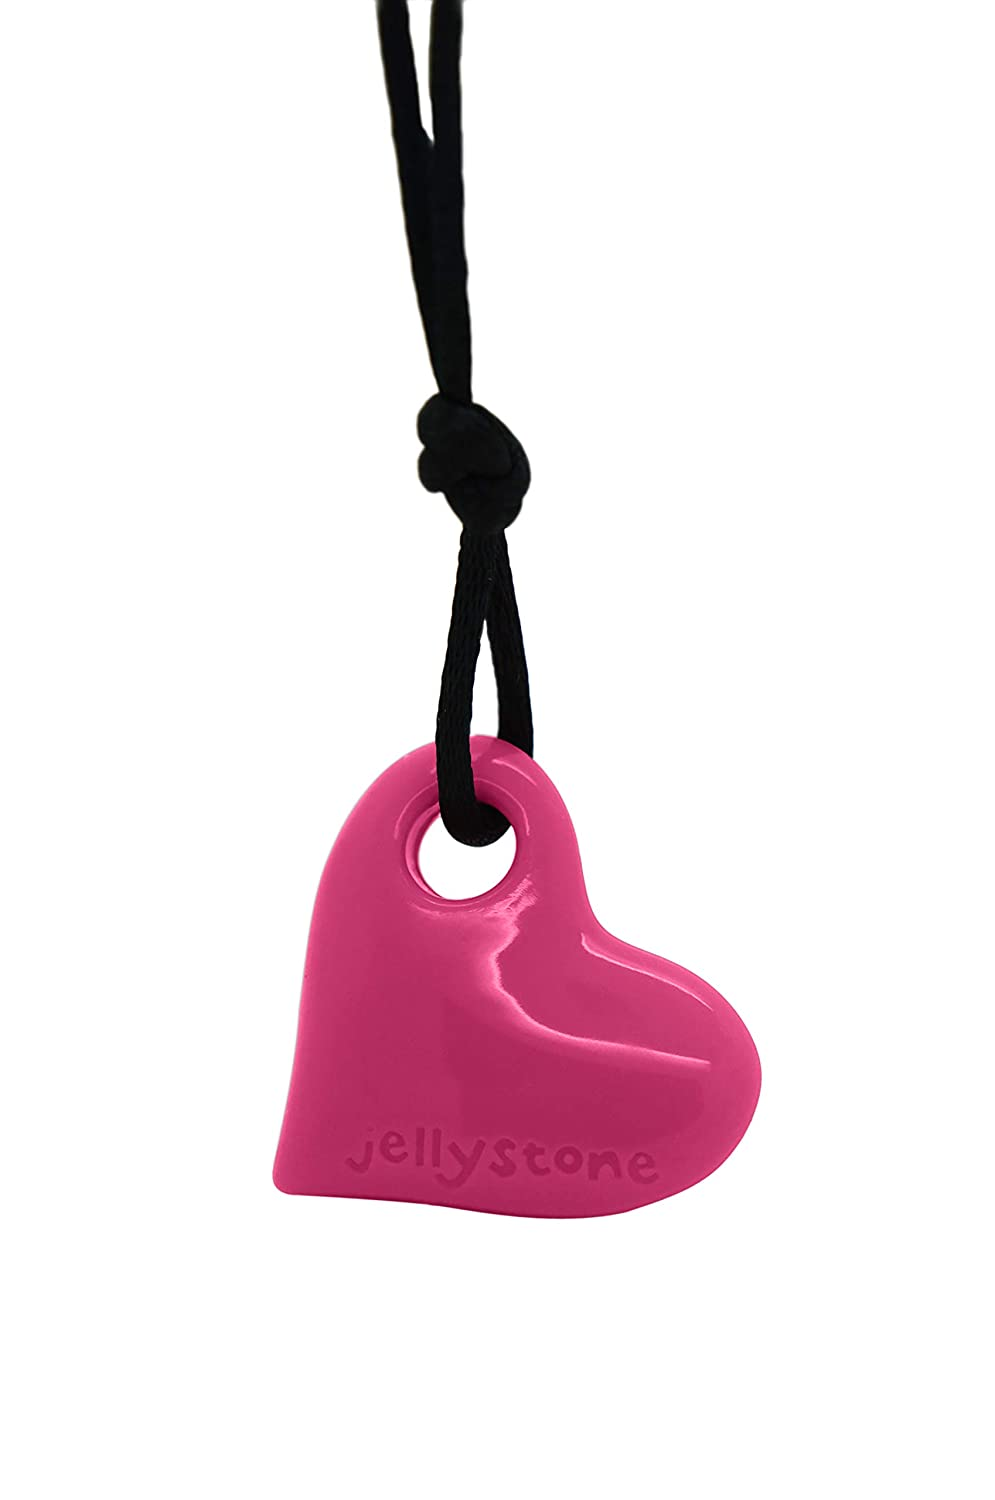 4caf2170a7484 Jellystone Junior Heart Pendant Silicone Non-Toxic Chewelry Necklace  (Watermelon Pink)